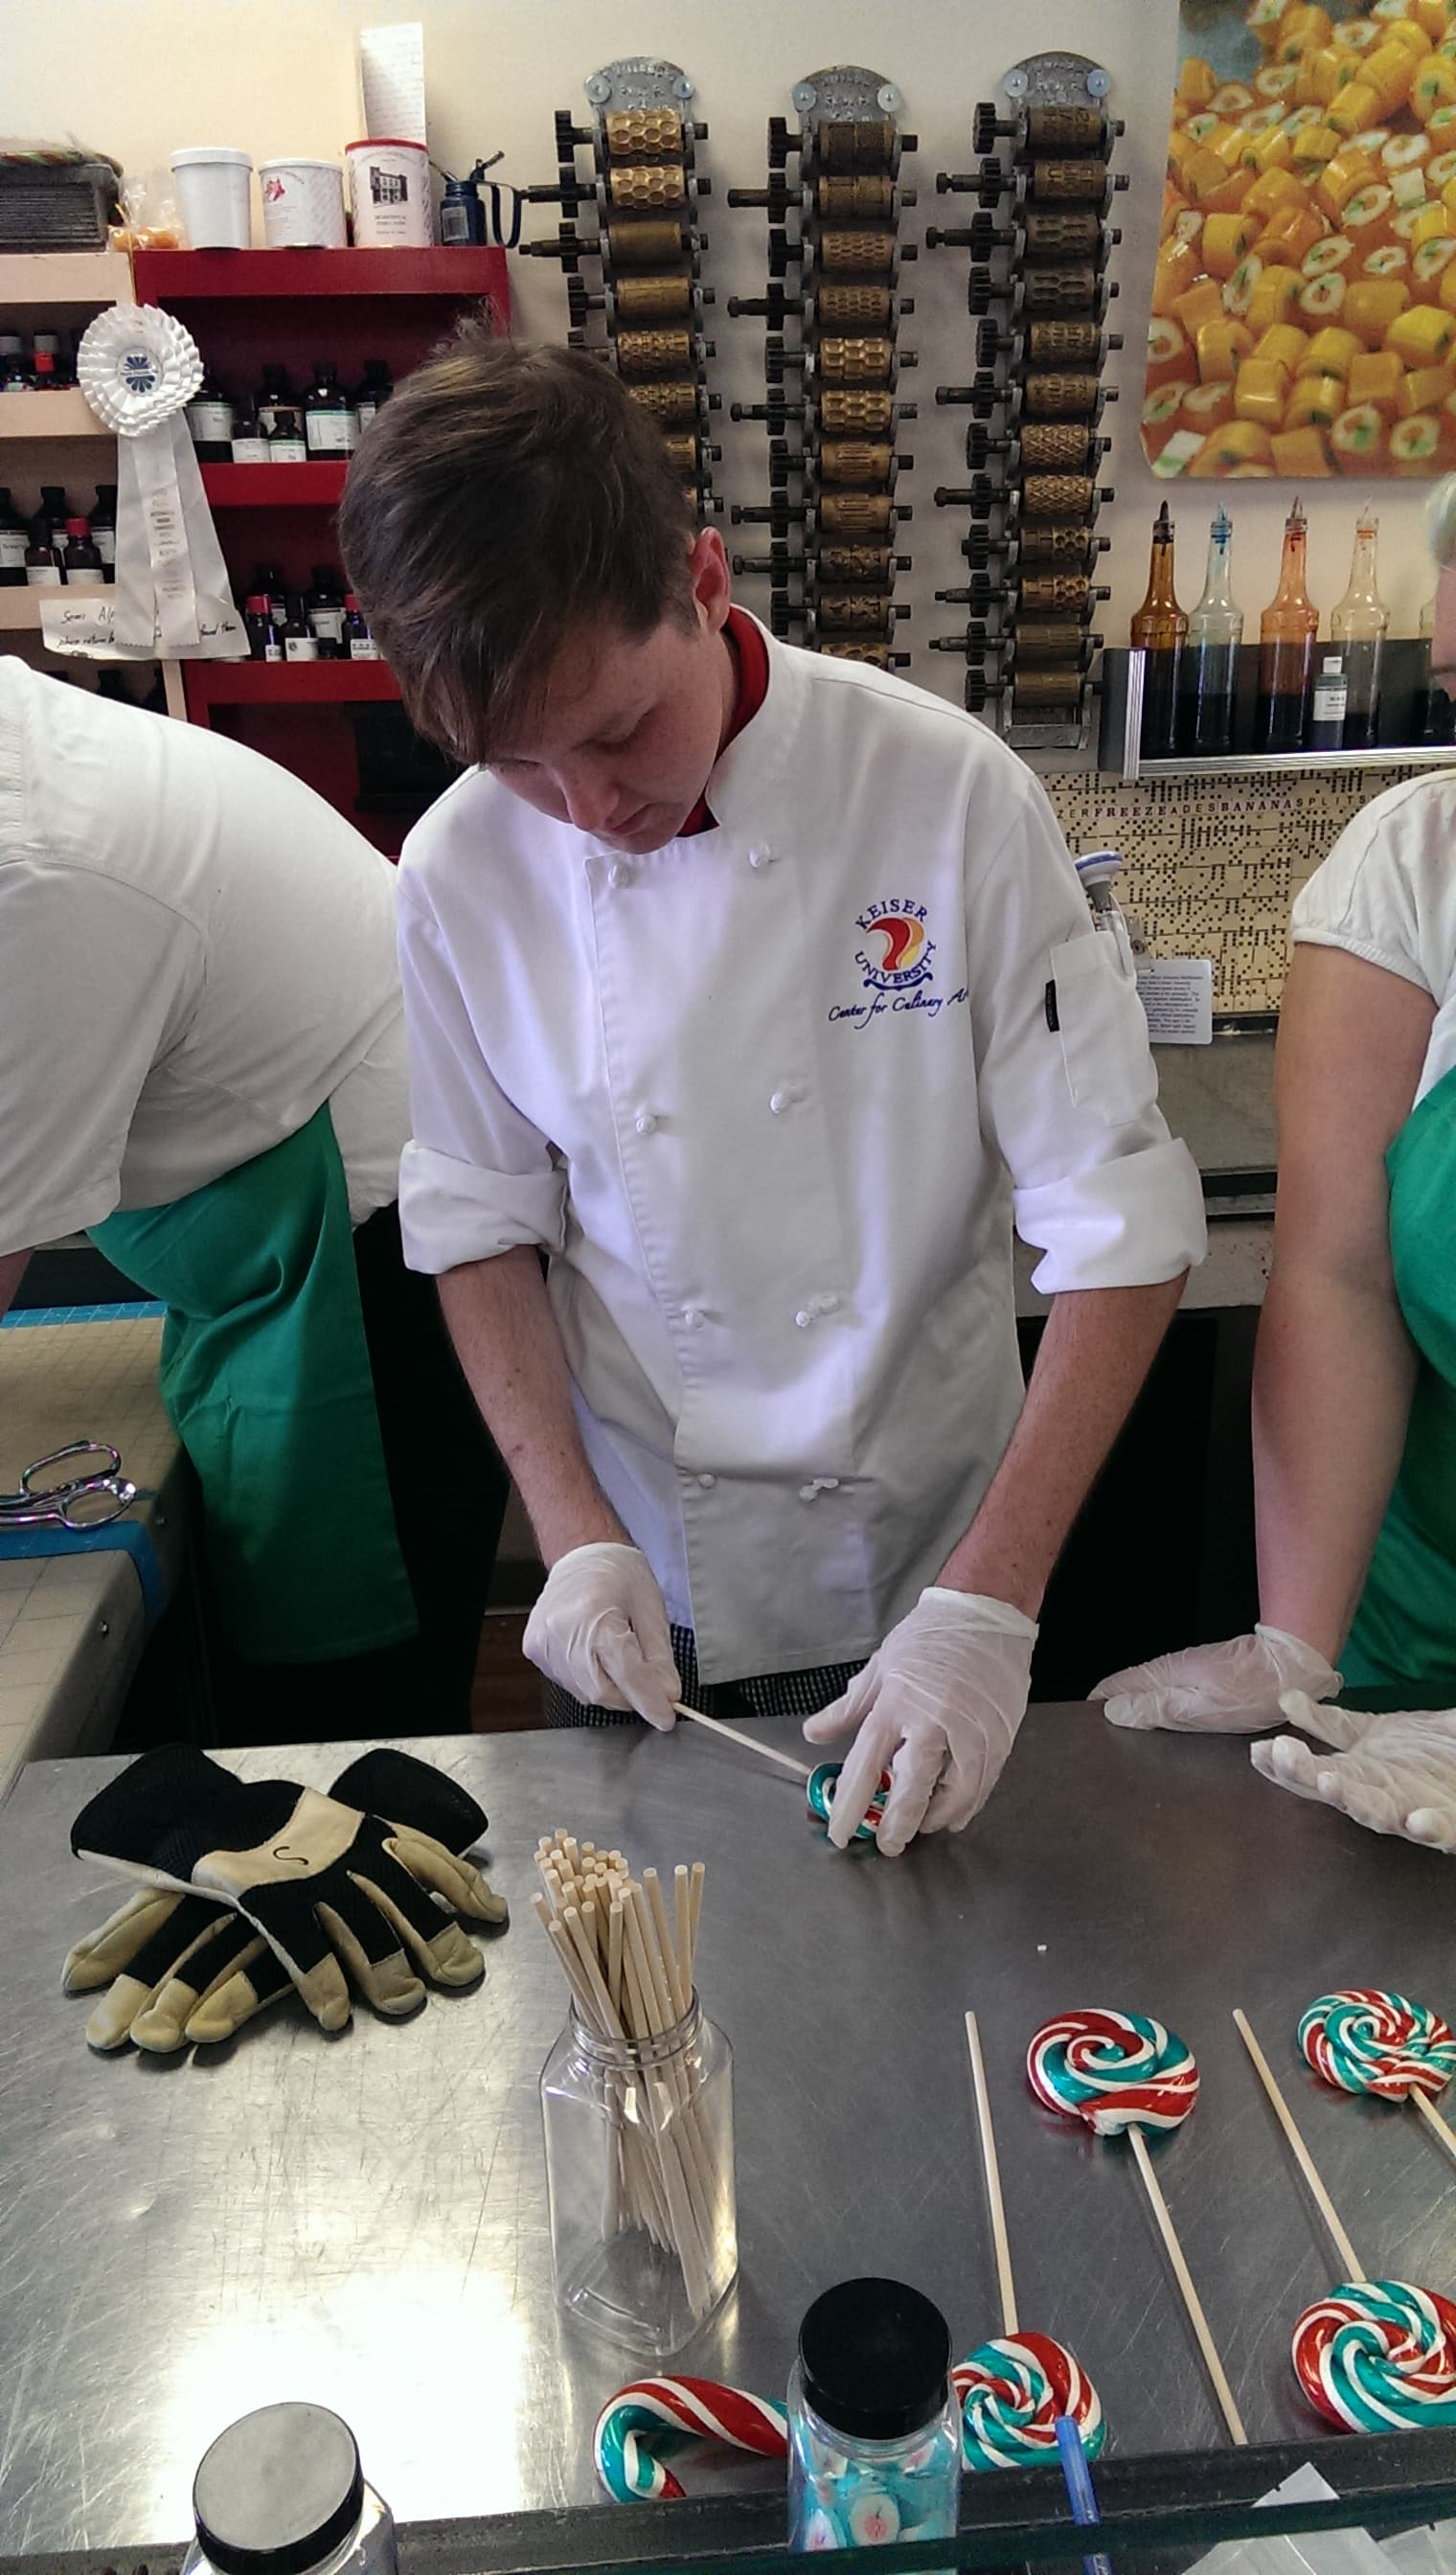 Tallahassee Culinary Students Visit Lofty Pursuits